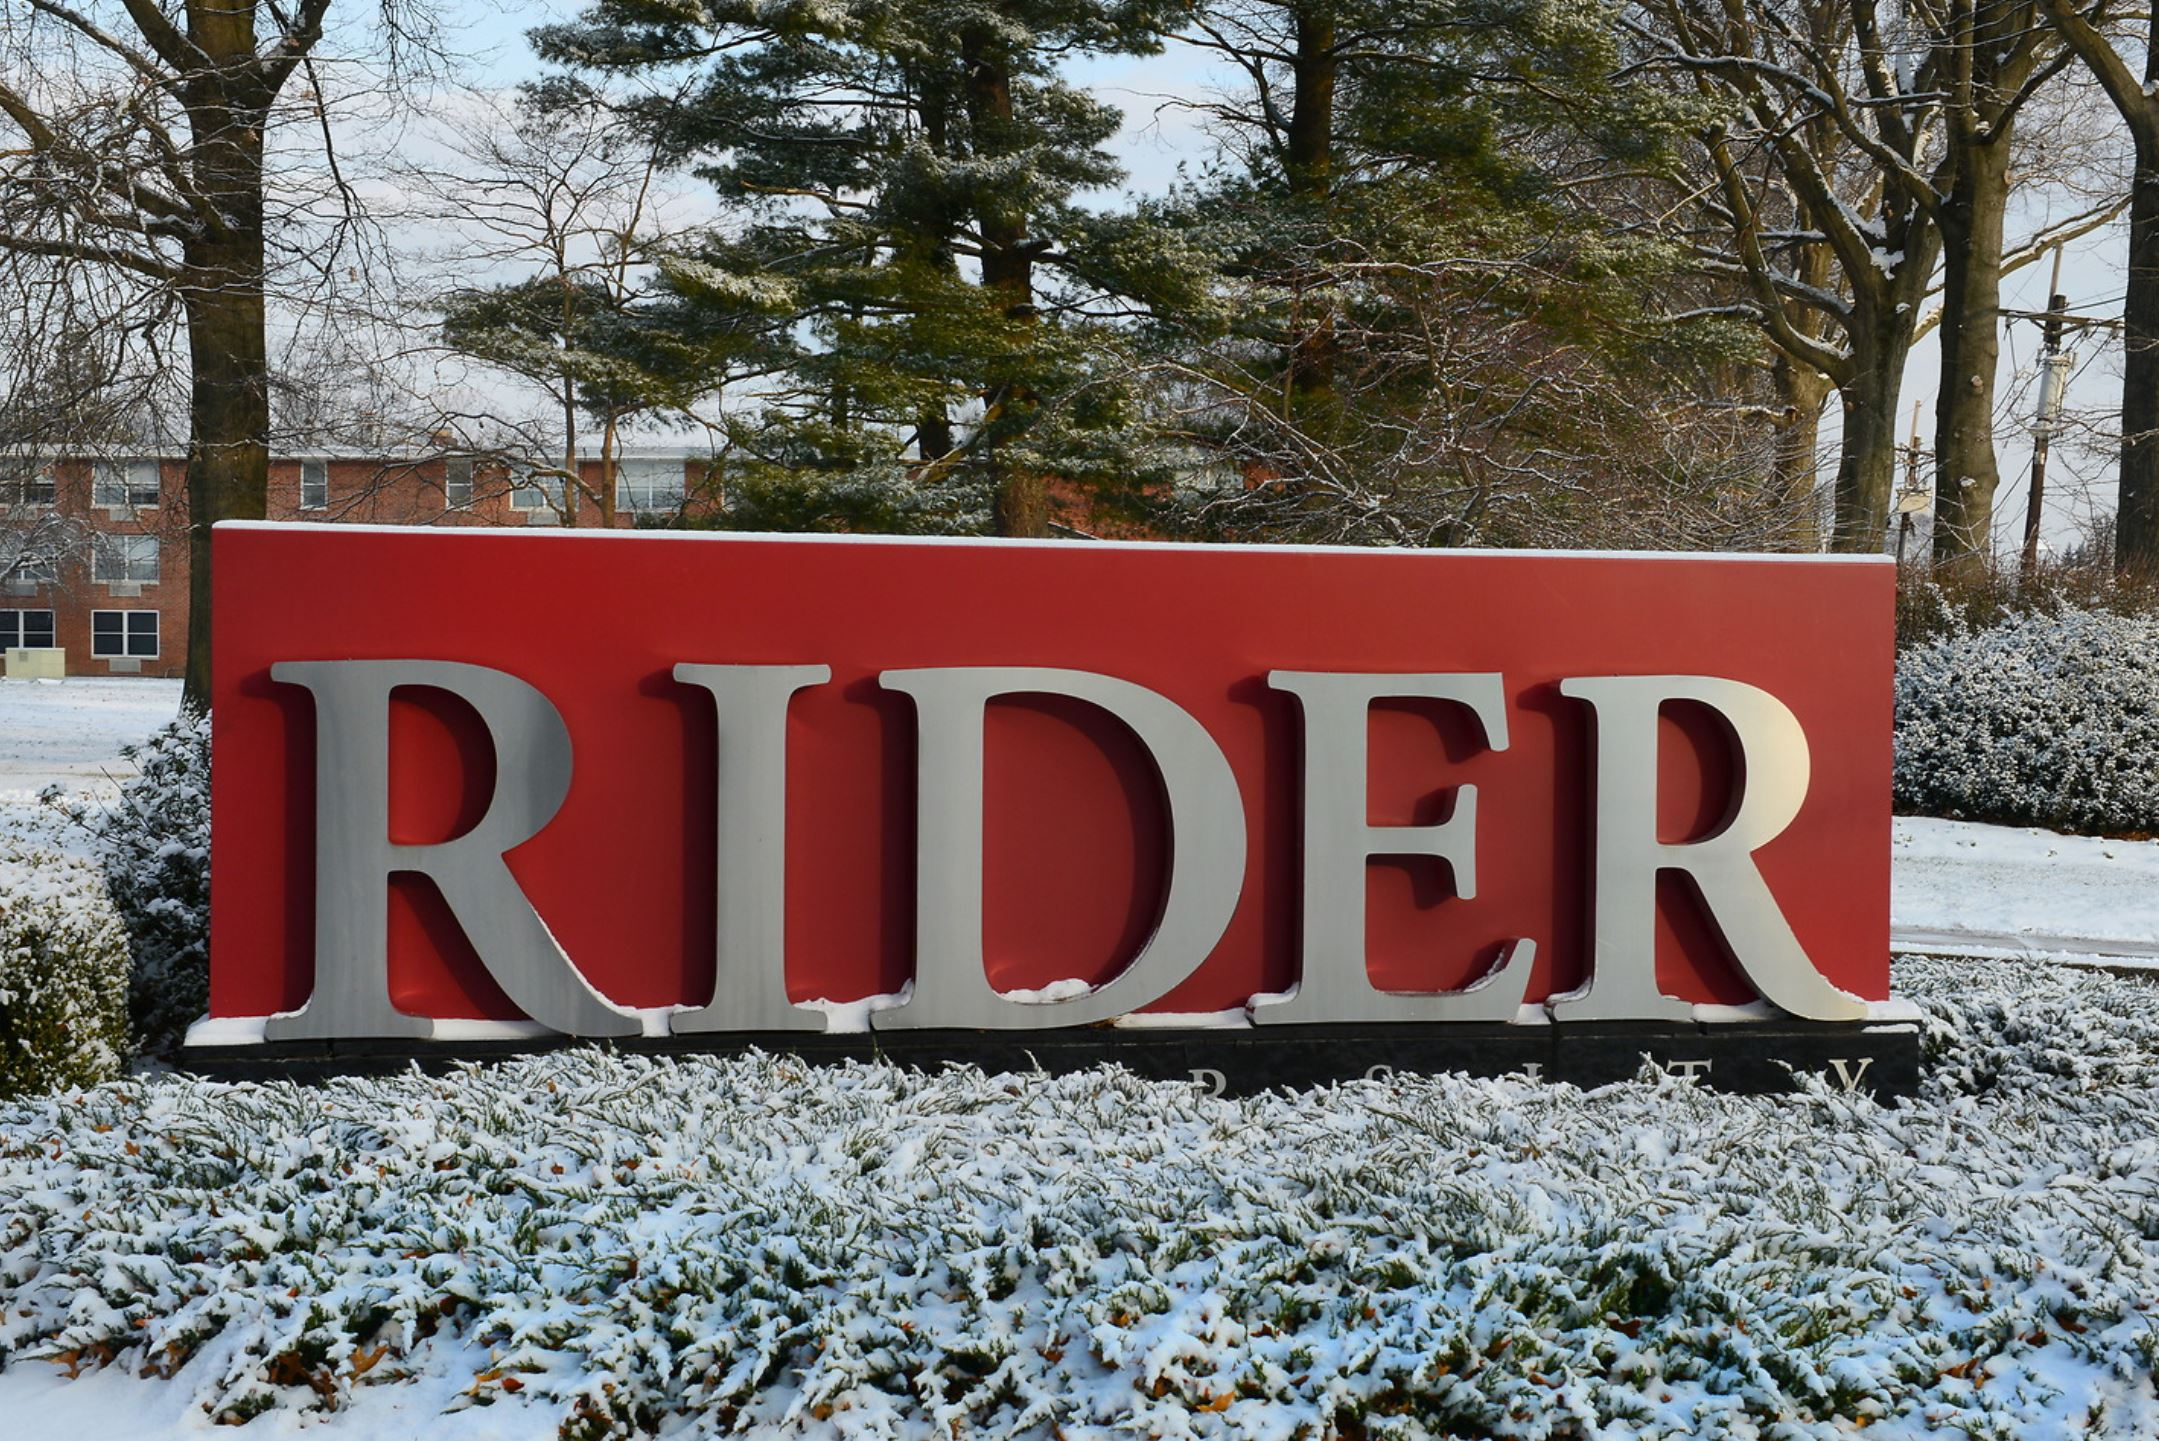 Rider sign in the snow